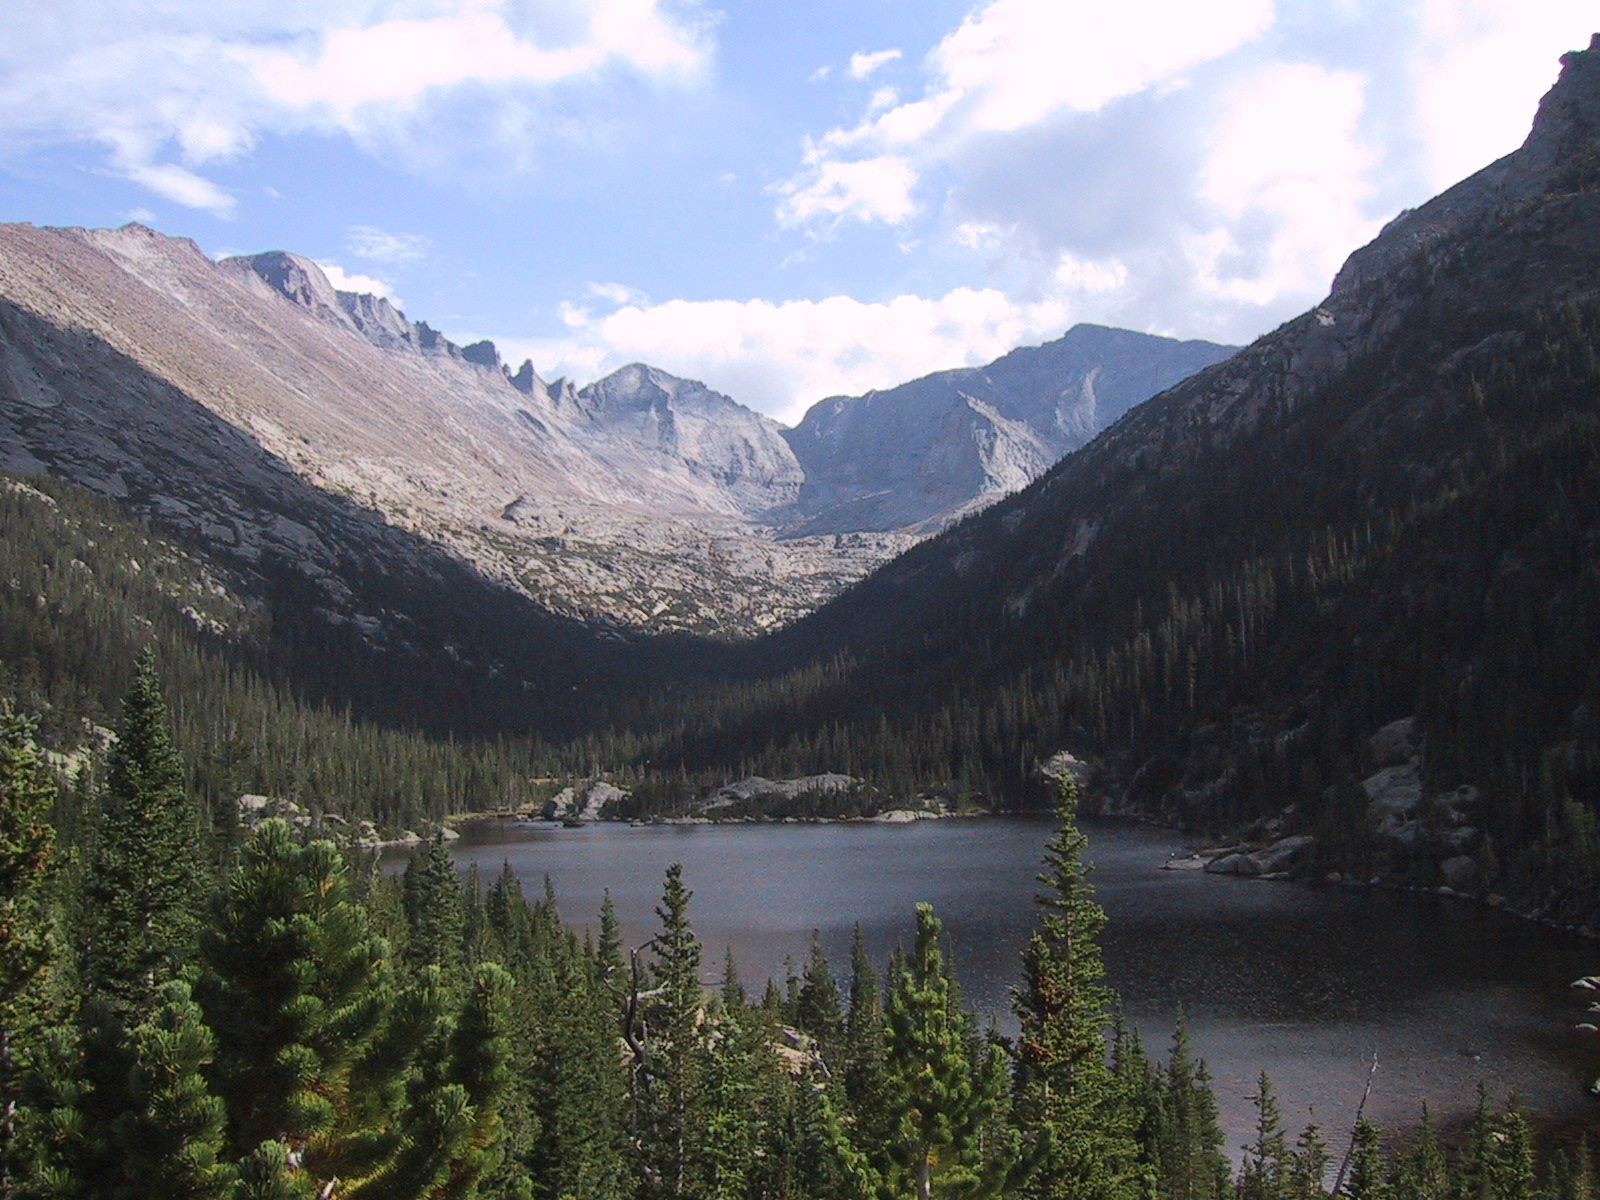 File:Denver-Colorado-The Mountains.jpg - Wikipedia